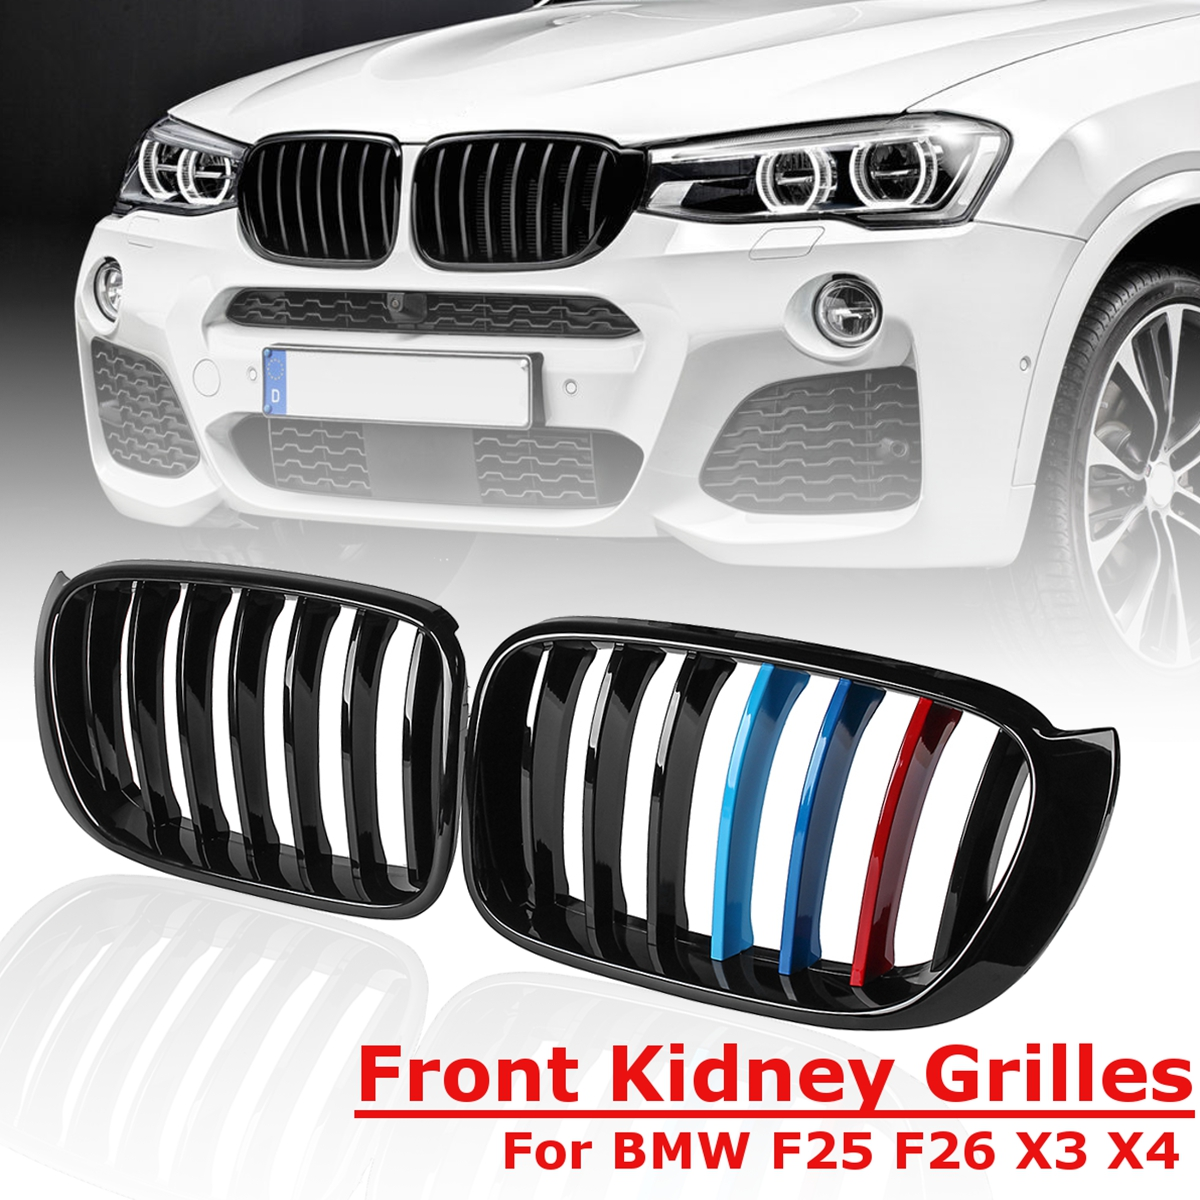 1 Pair 3 Colors for BMW X3 F25 F26 2014 2015 2016 2017 for Front Bumper Sport Kidney Grill Grille Gloss Black Replacement Racing x3m x4m style durable abs front hood grill for 2014 2015 2016 bmw x4 f26 & x3 f25 lci in m color great fitment bumper grille